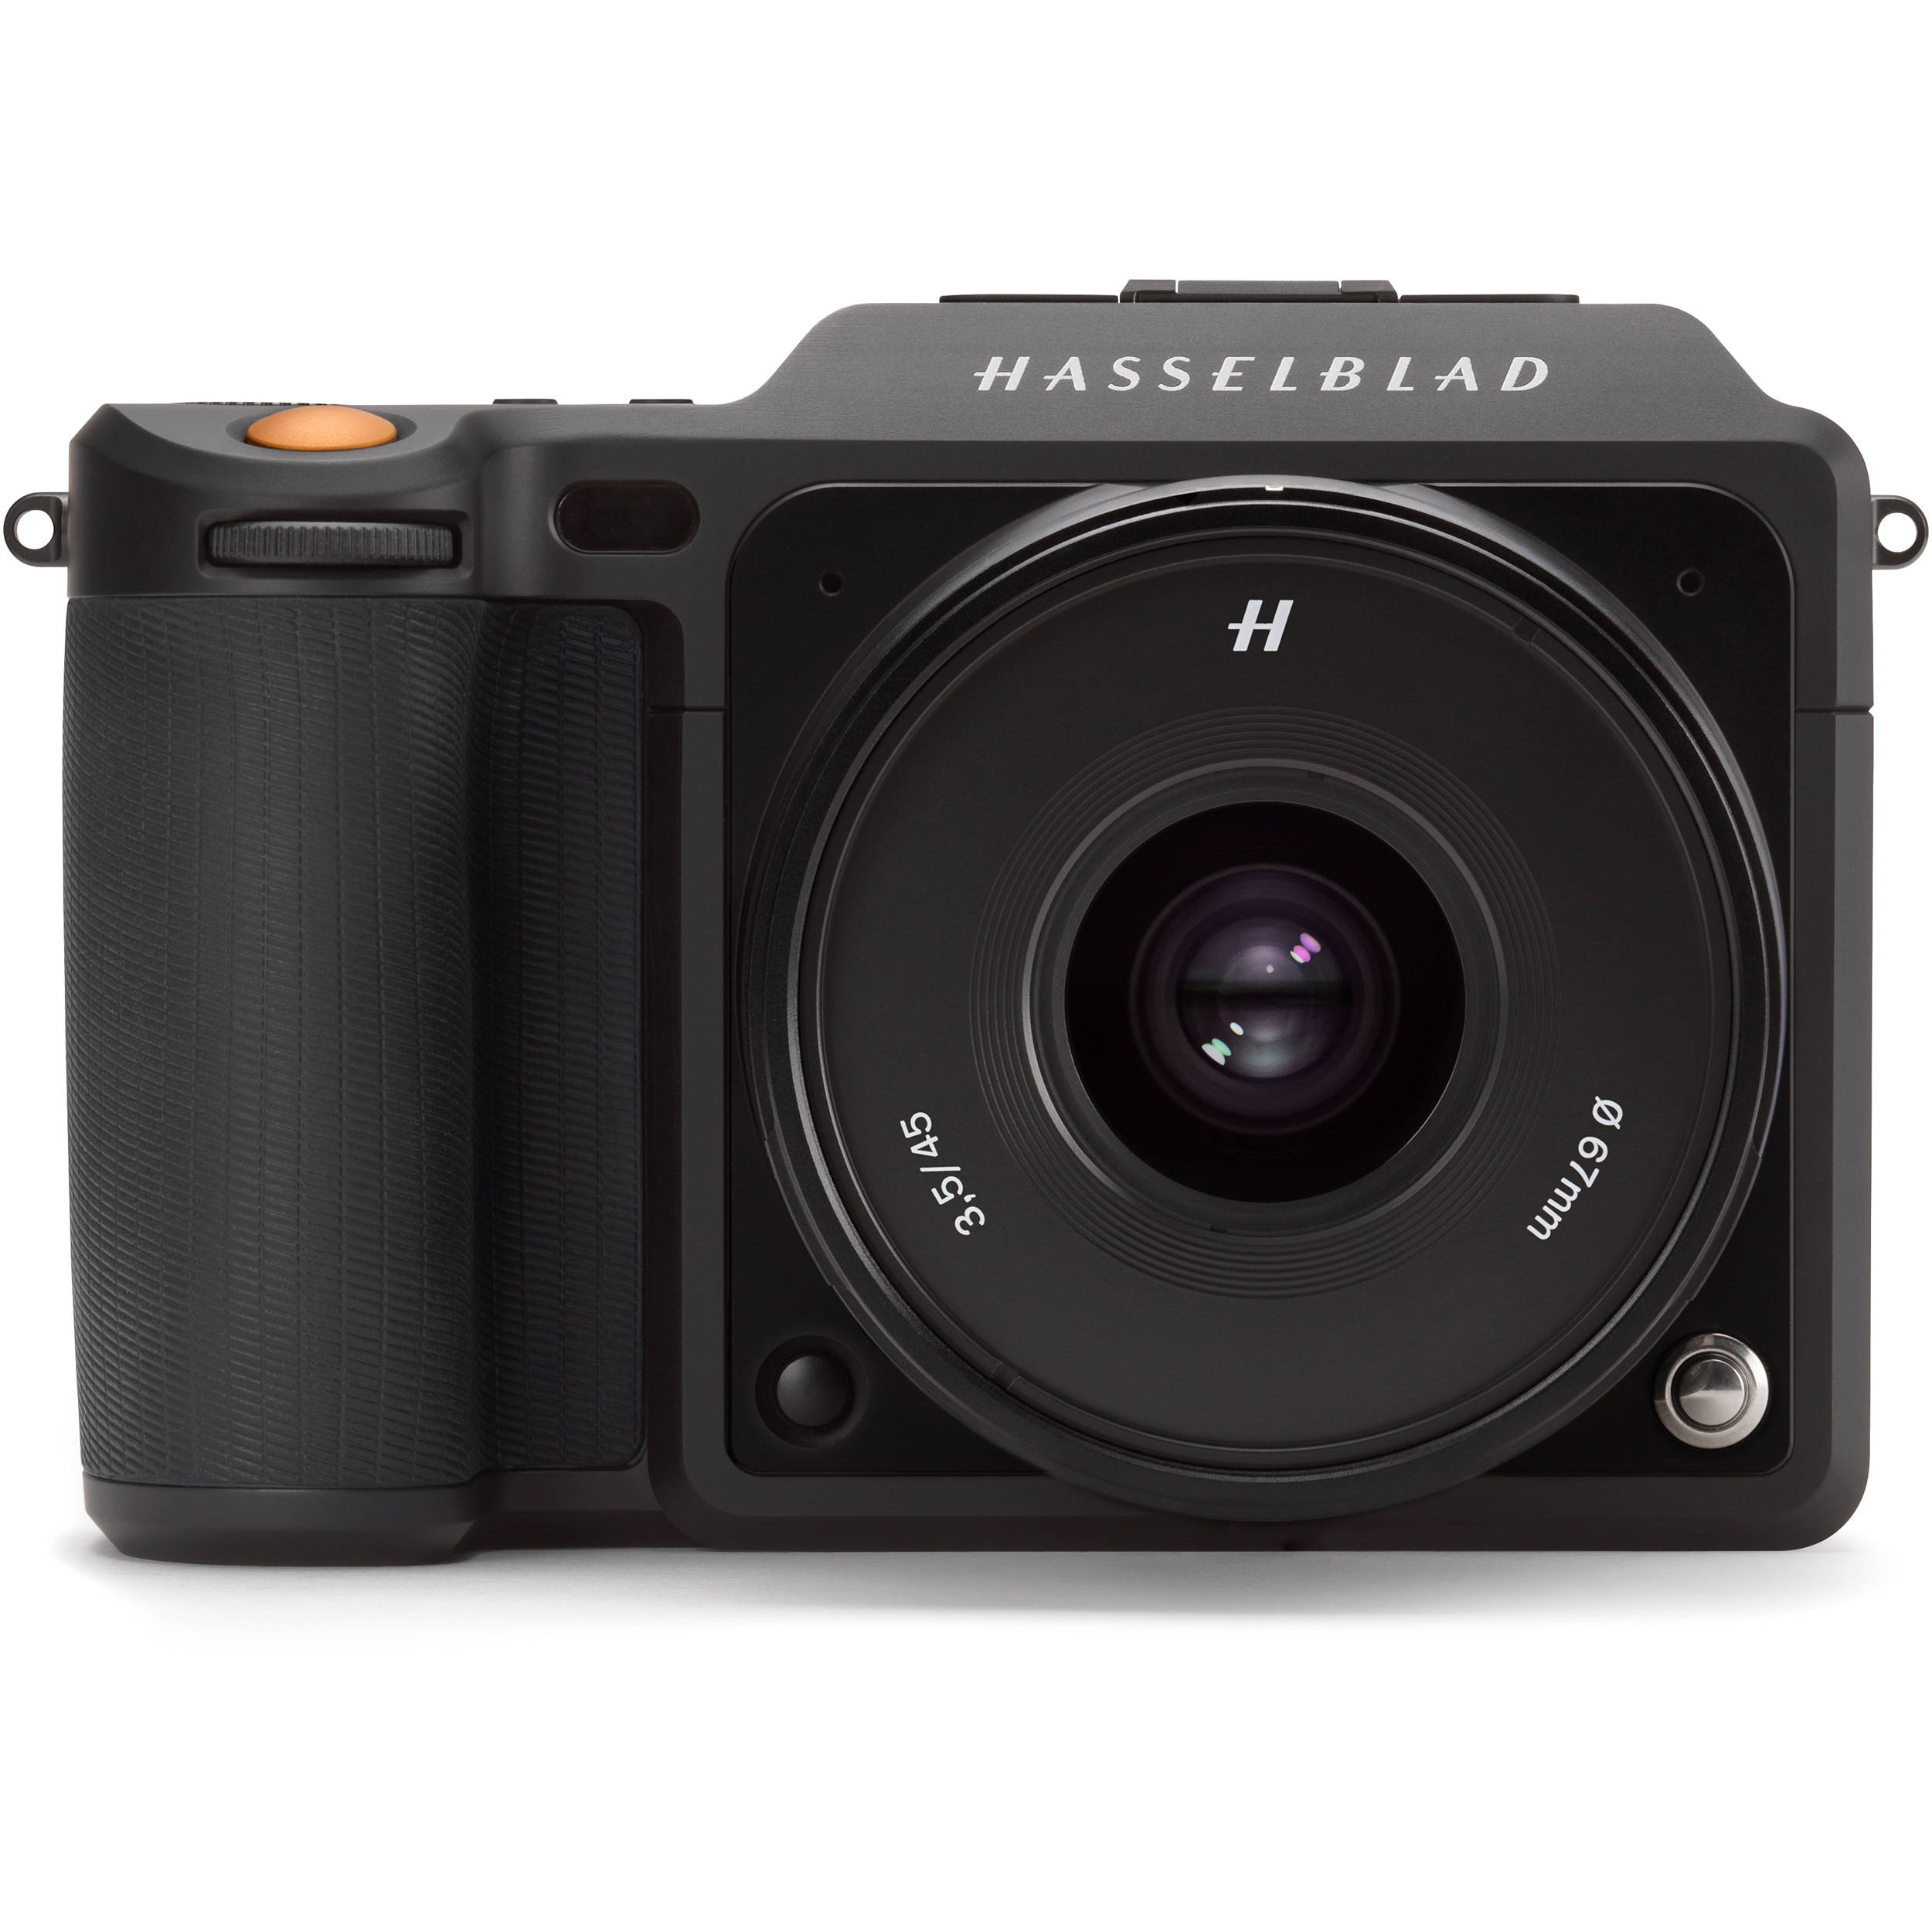 Medium Format Digital Cameras | B&H Photo Video